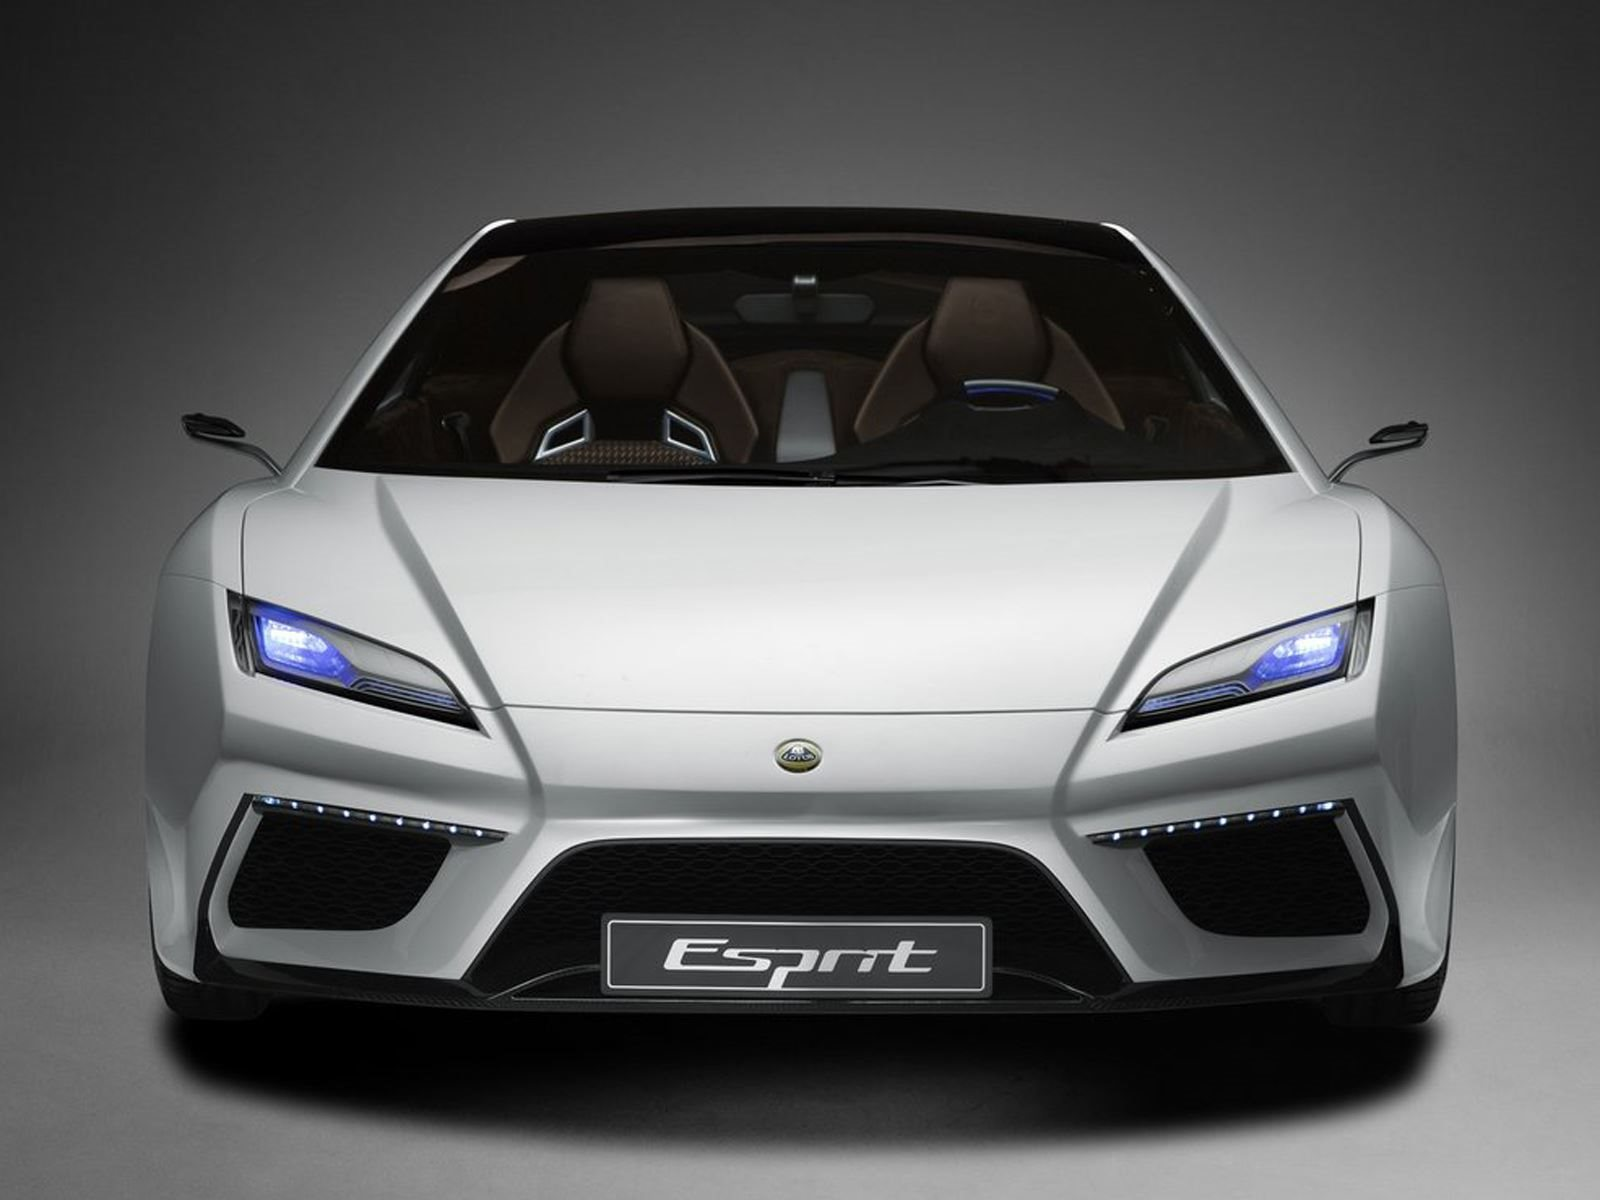 2020 Lotus Esprit Redesign and Review